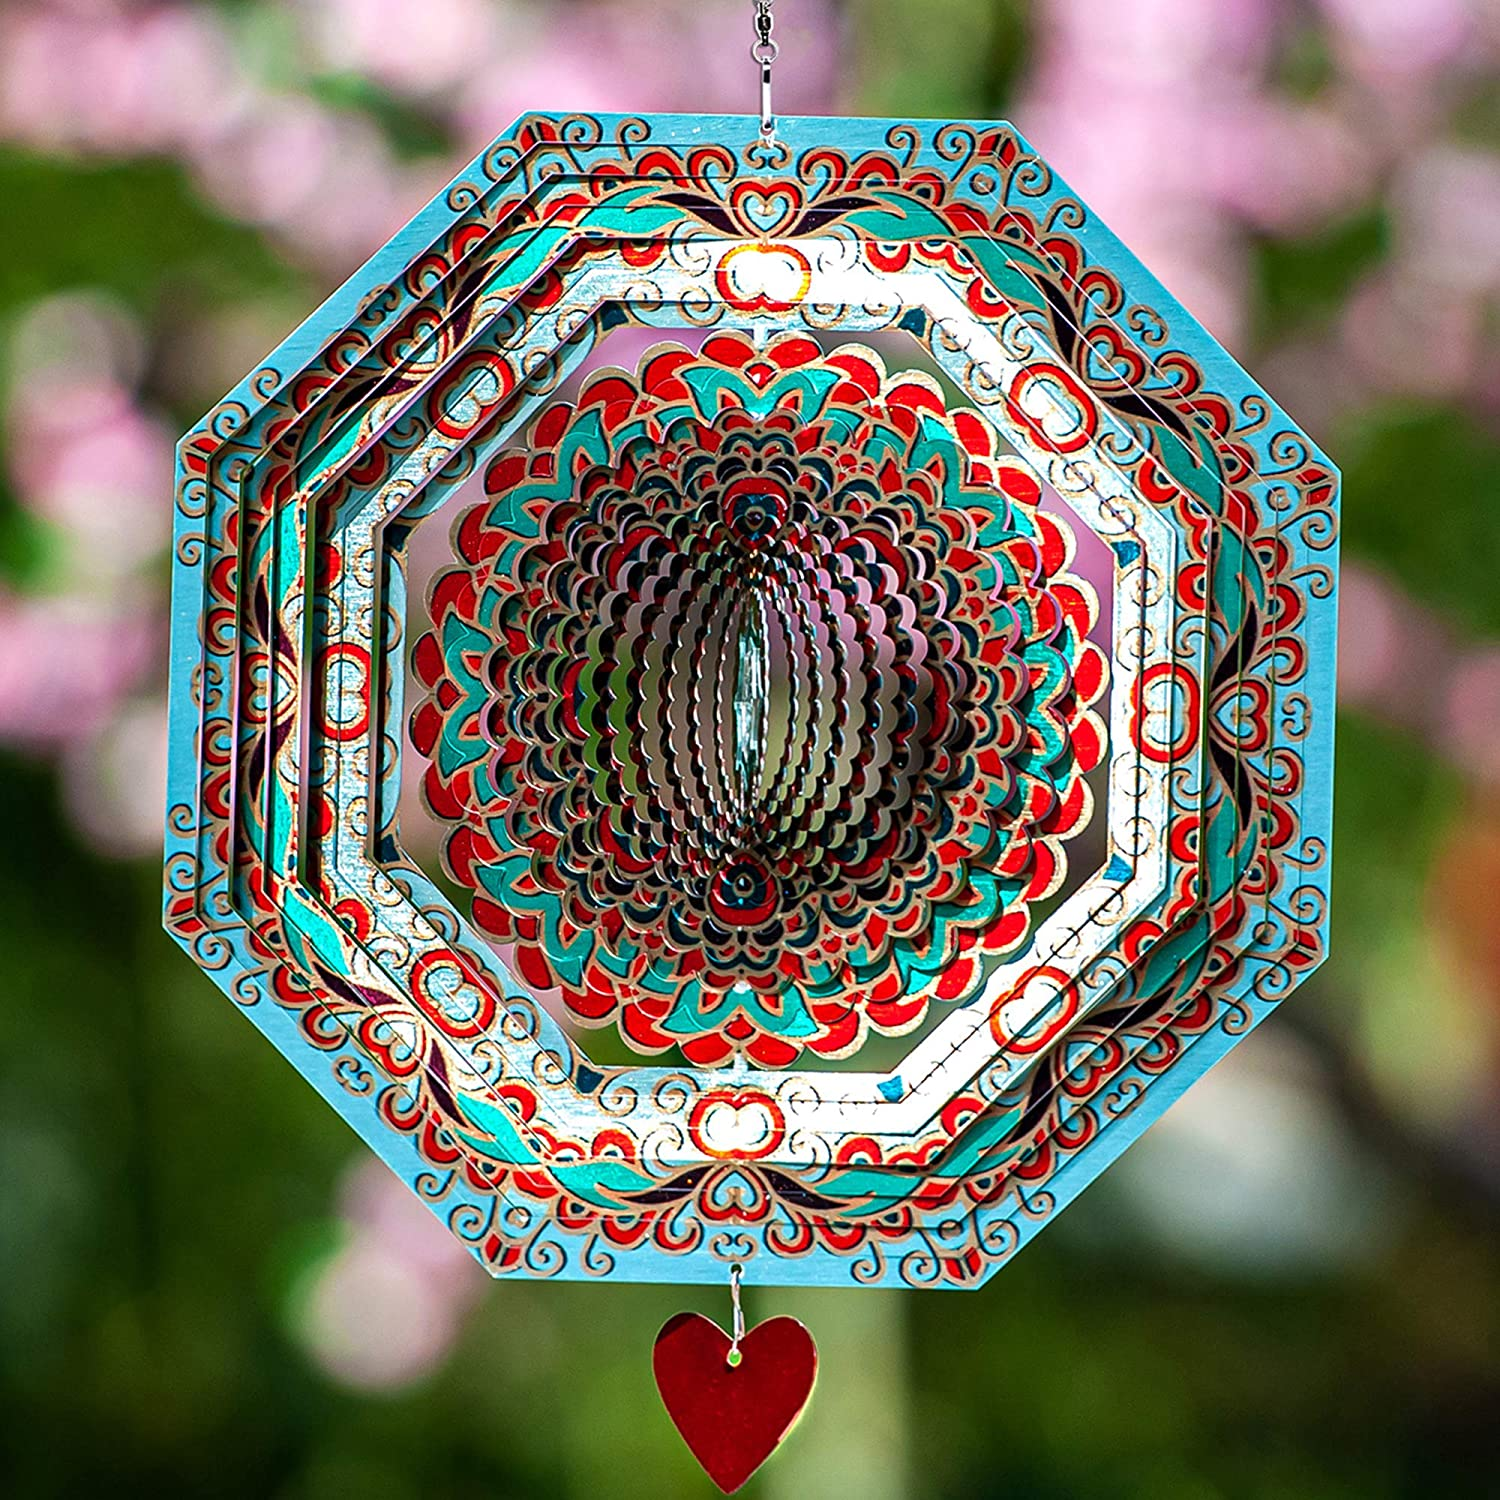 Wind Spinner Mandala Mystique 12 inches – 3D Stainless Steel – Laser Cut Metal Art Geometric Pattern - Hanging Wind Spinner, Kinetic Yard Art Decorations - Indoor/Outdoor Decor